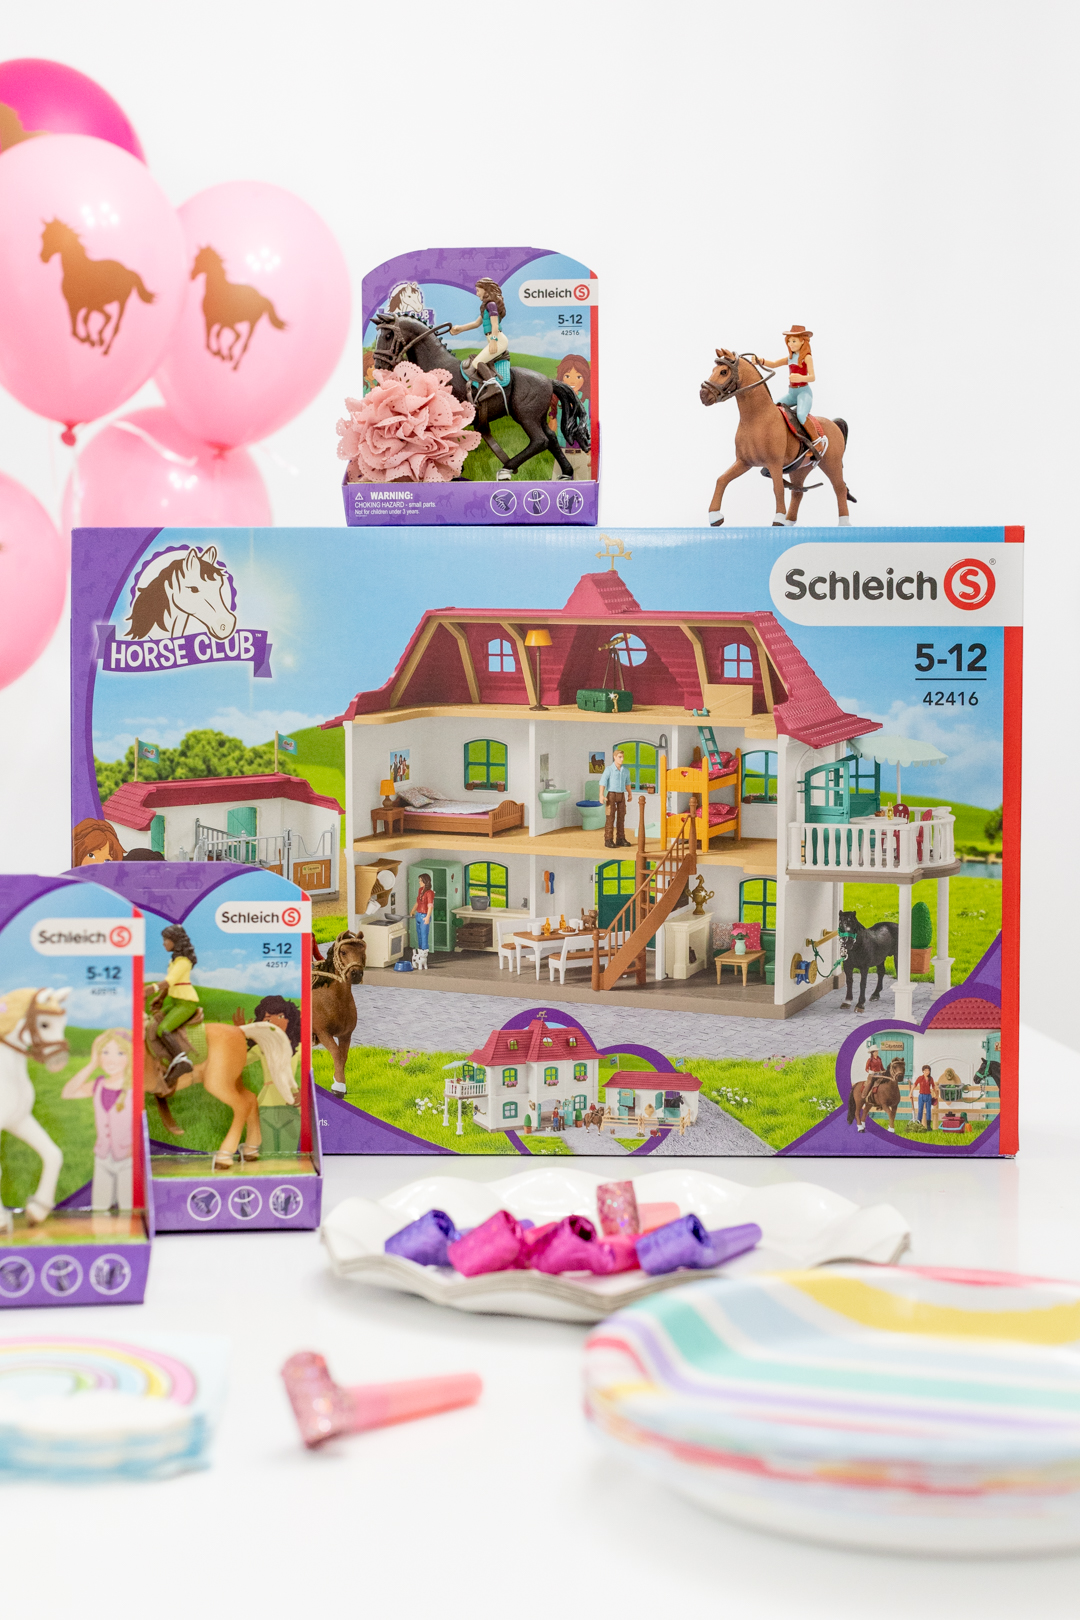 Large horse stable with house and stable, Schleich's largest playset to date